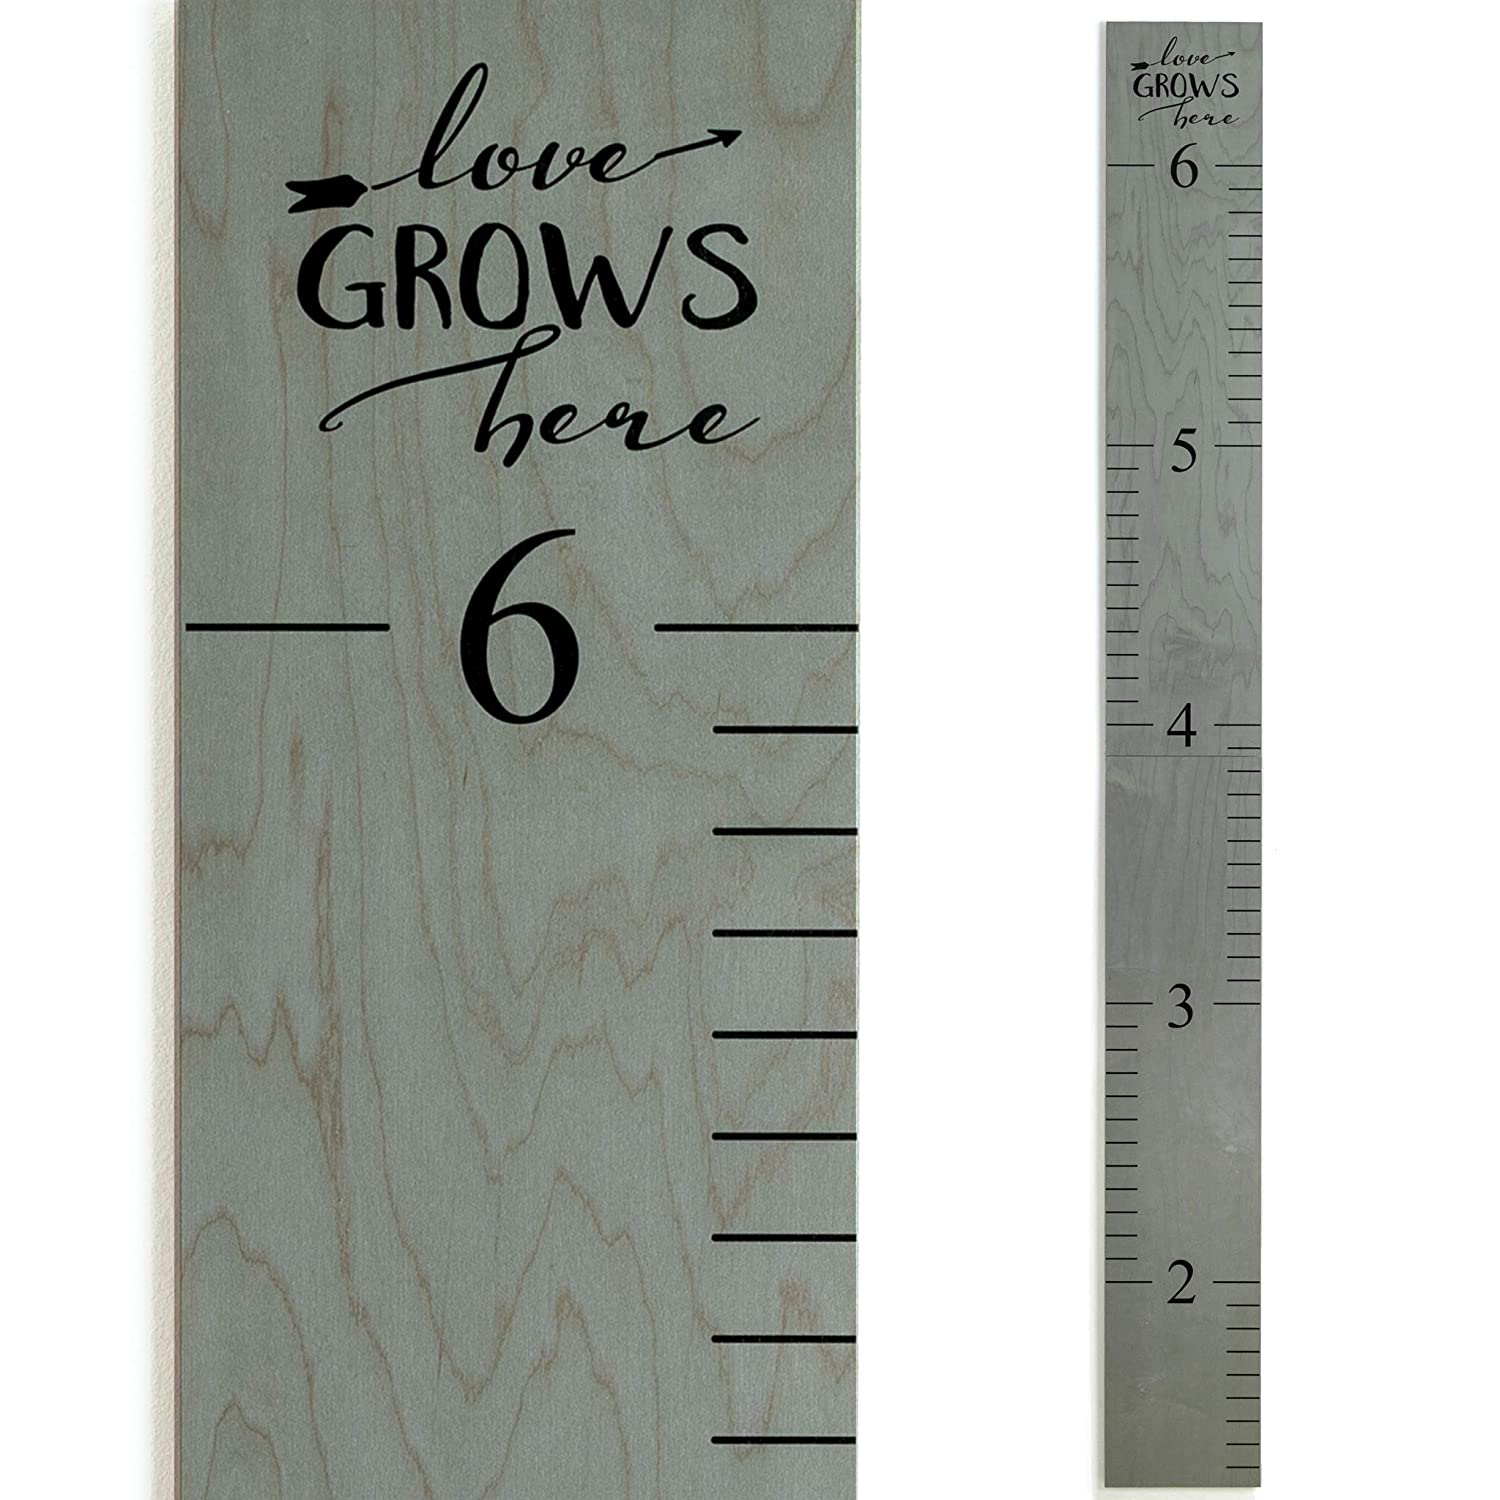 Wooden Ruler Growth Charts Ruler for Boys and Girls | Weathered Gray | Love Grows Here